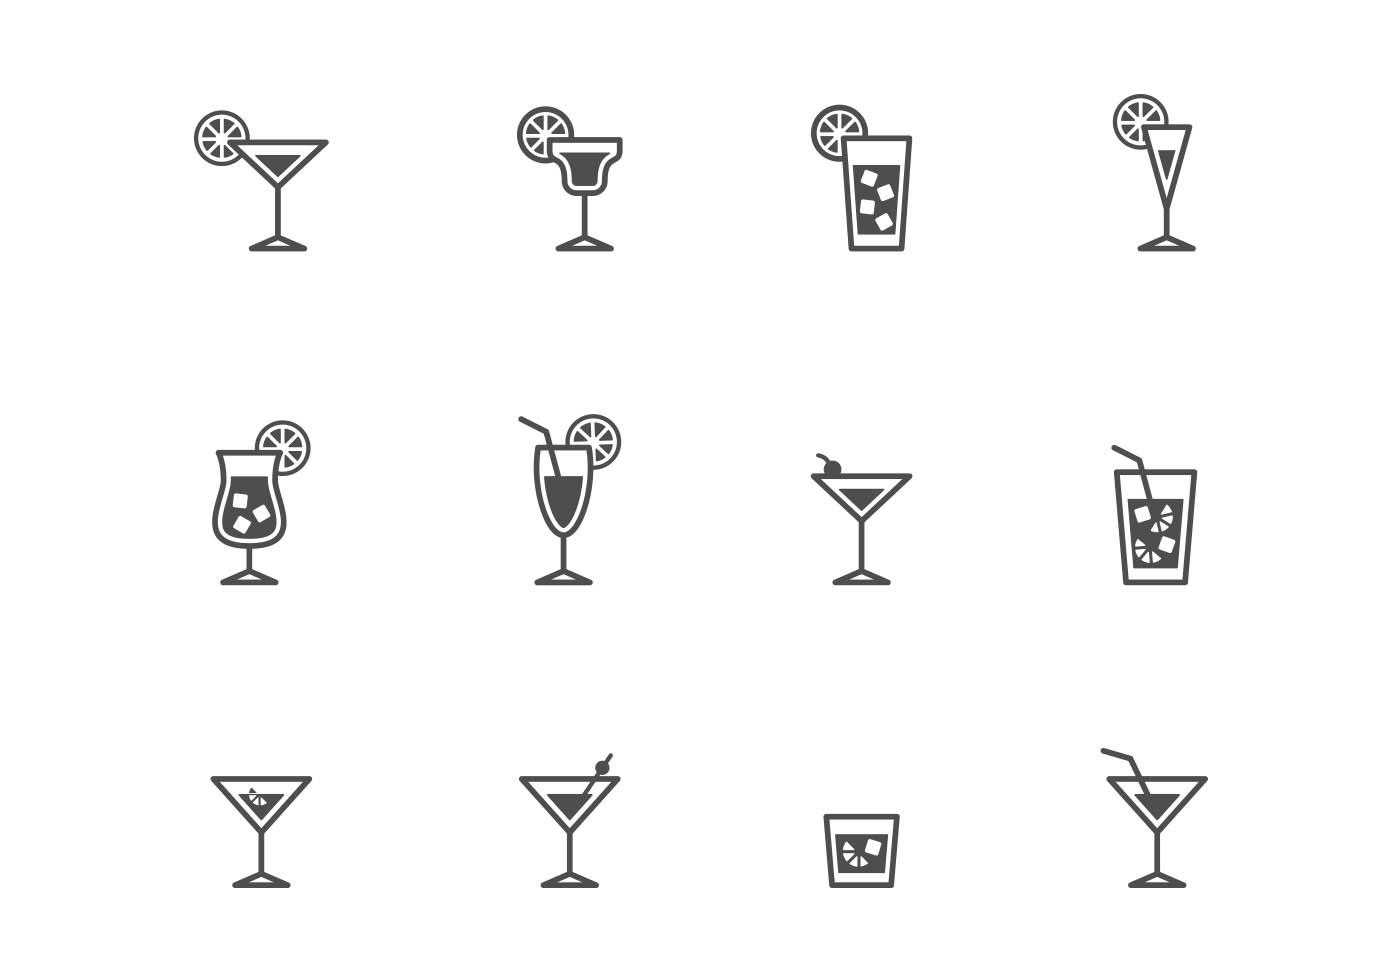 Bar sangria drinks clipart outline image transparent stock Cocktail Free Vector Art - (25,504 Free Downloads) image transparent stock